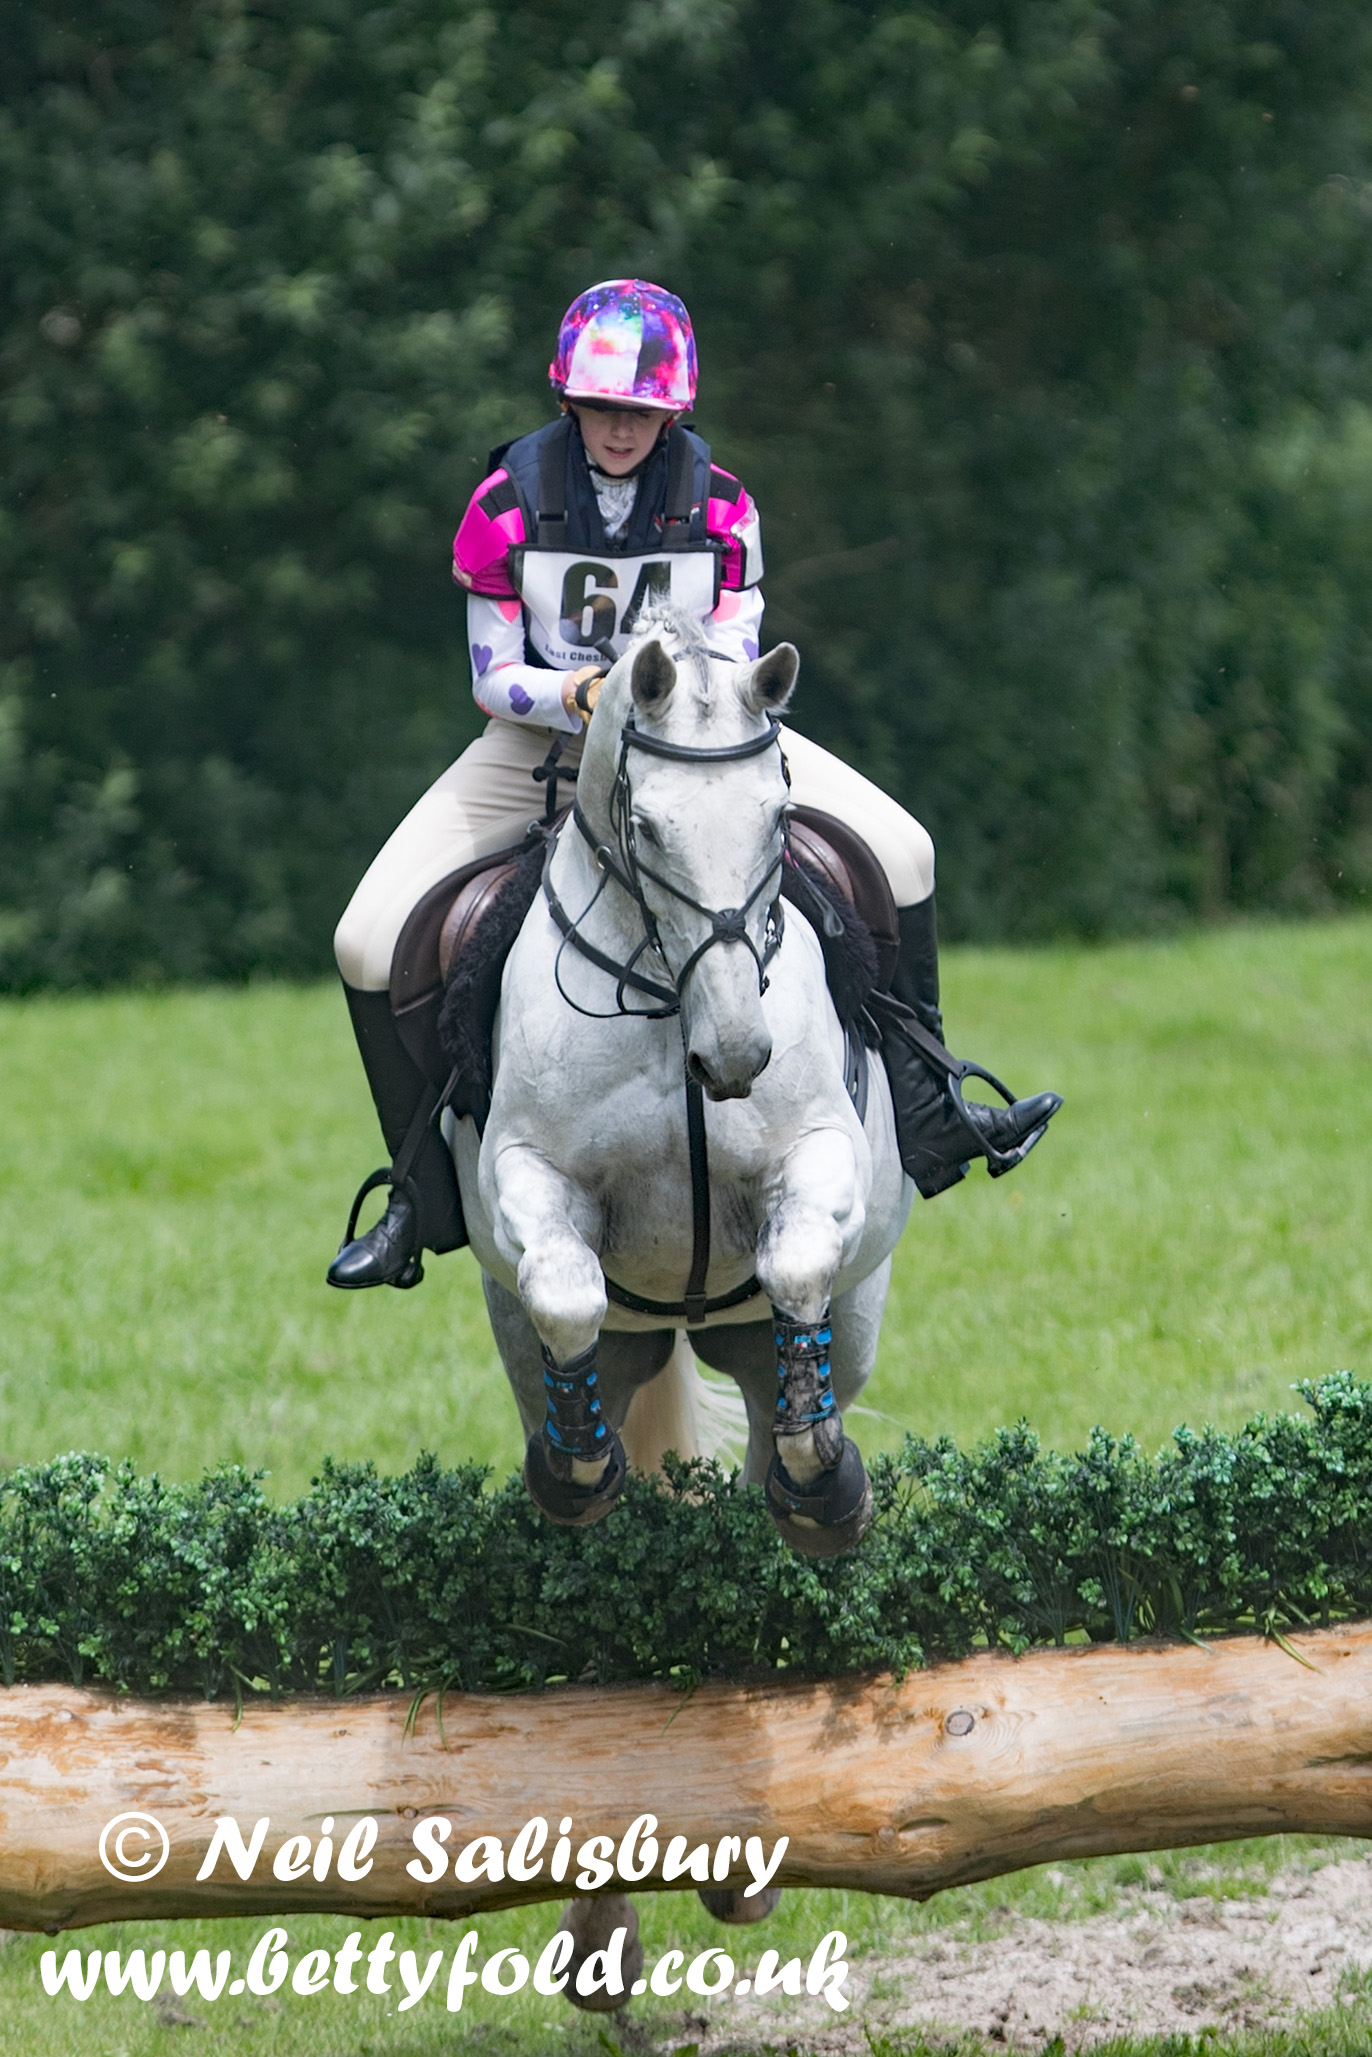 Oxenholme Eventing